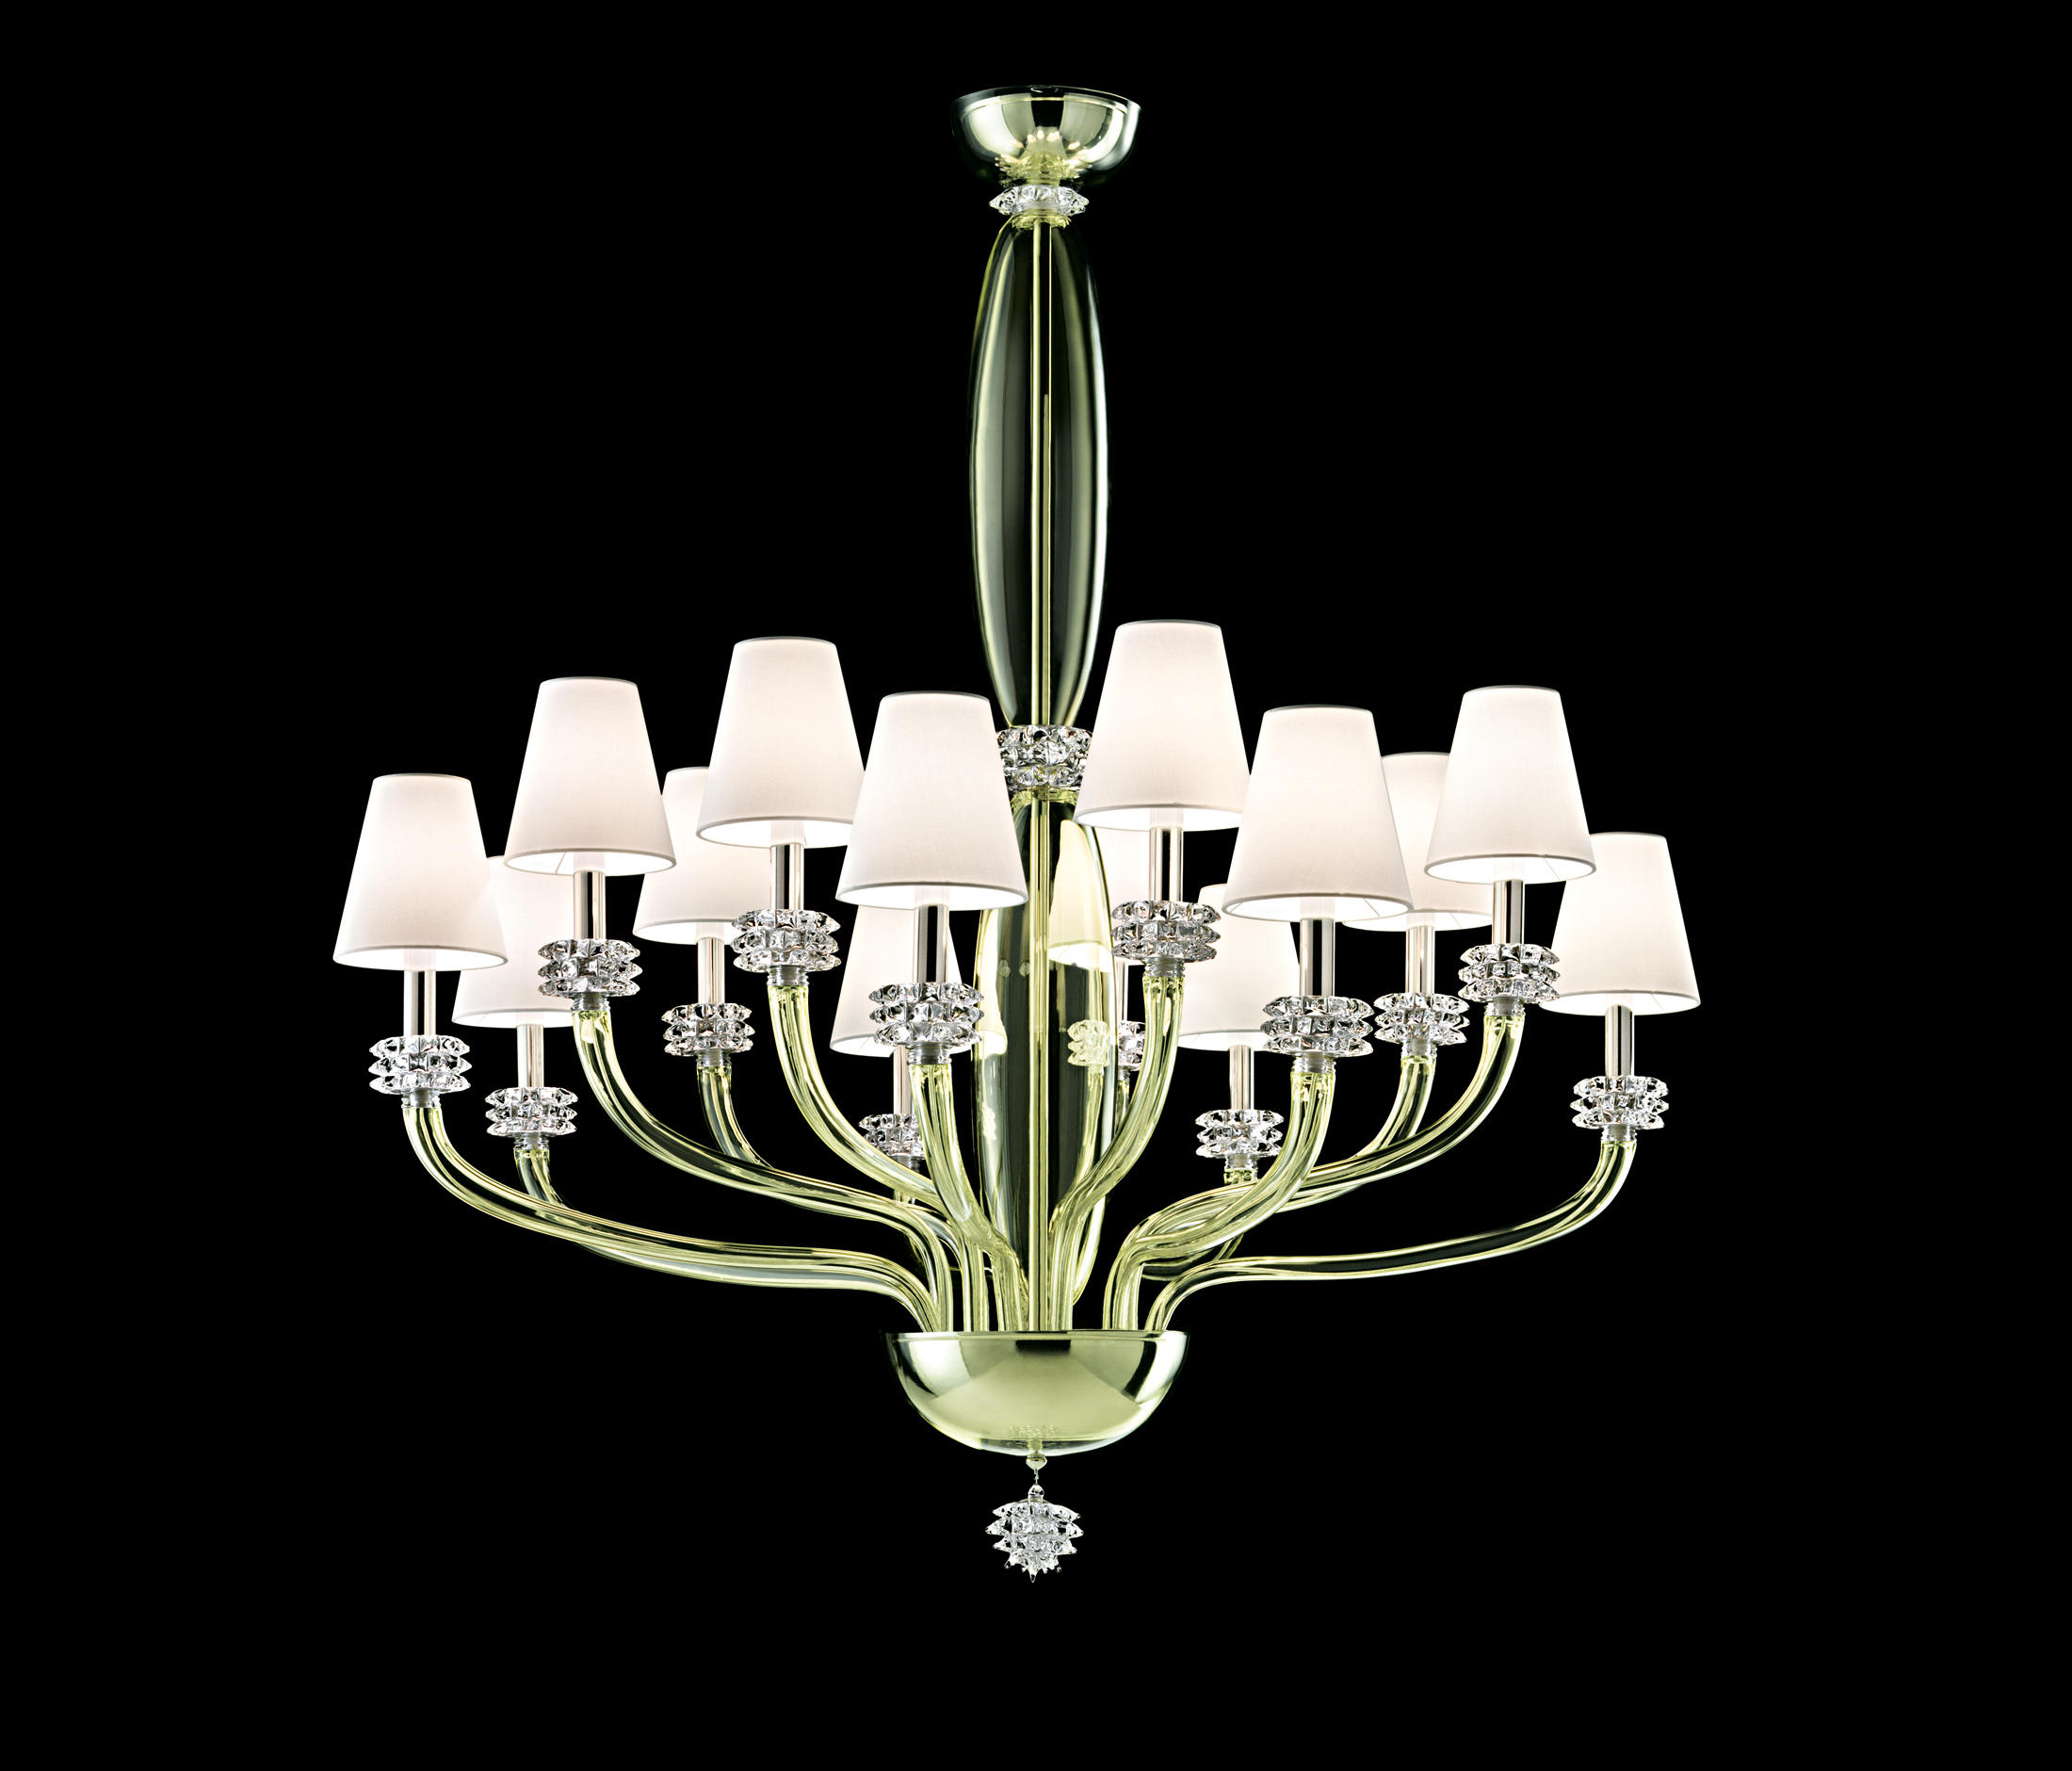 rotterdam ceiling suspended chandeliers from barovier. Black Bedroom Furniture Sets. Home Design Ideas